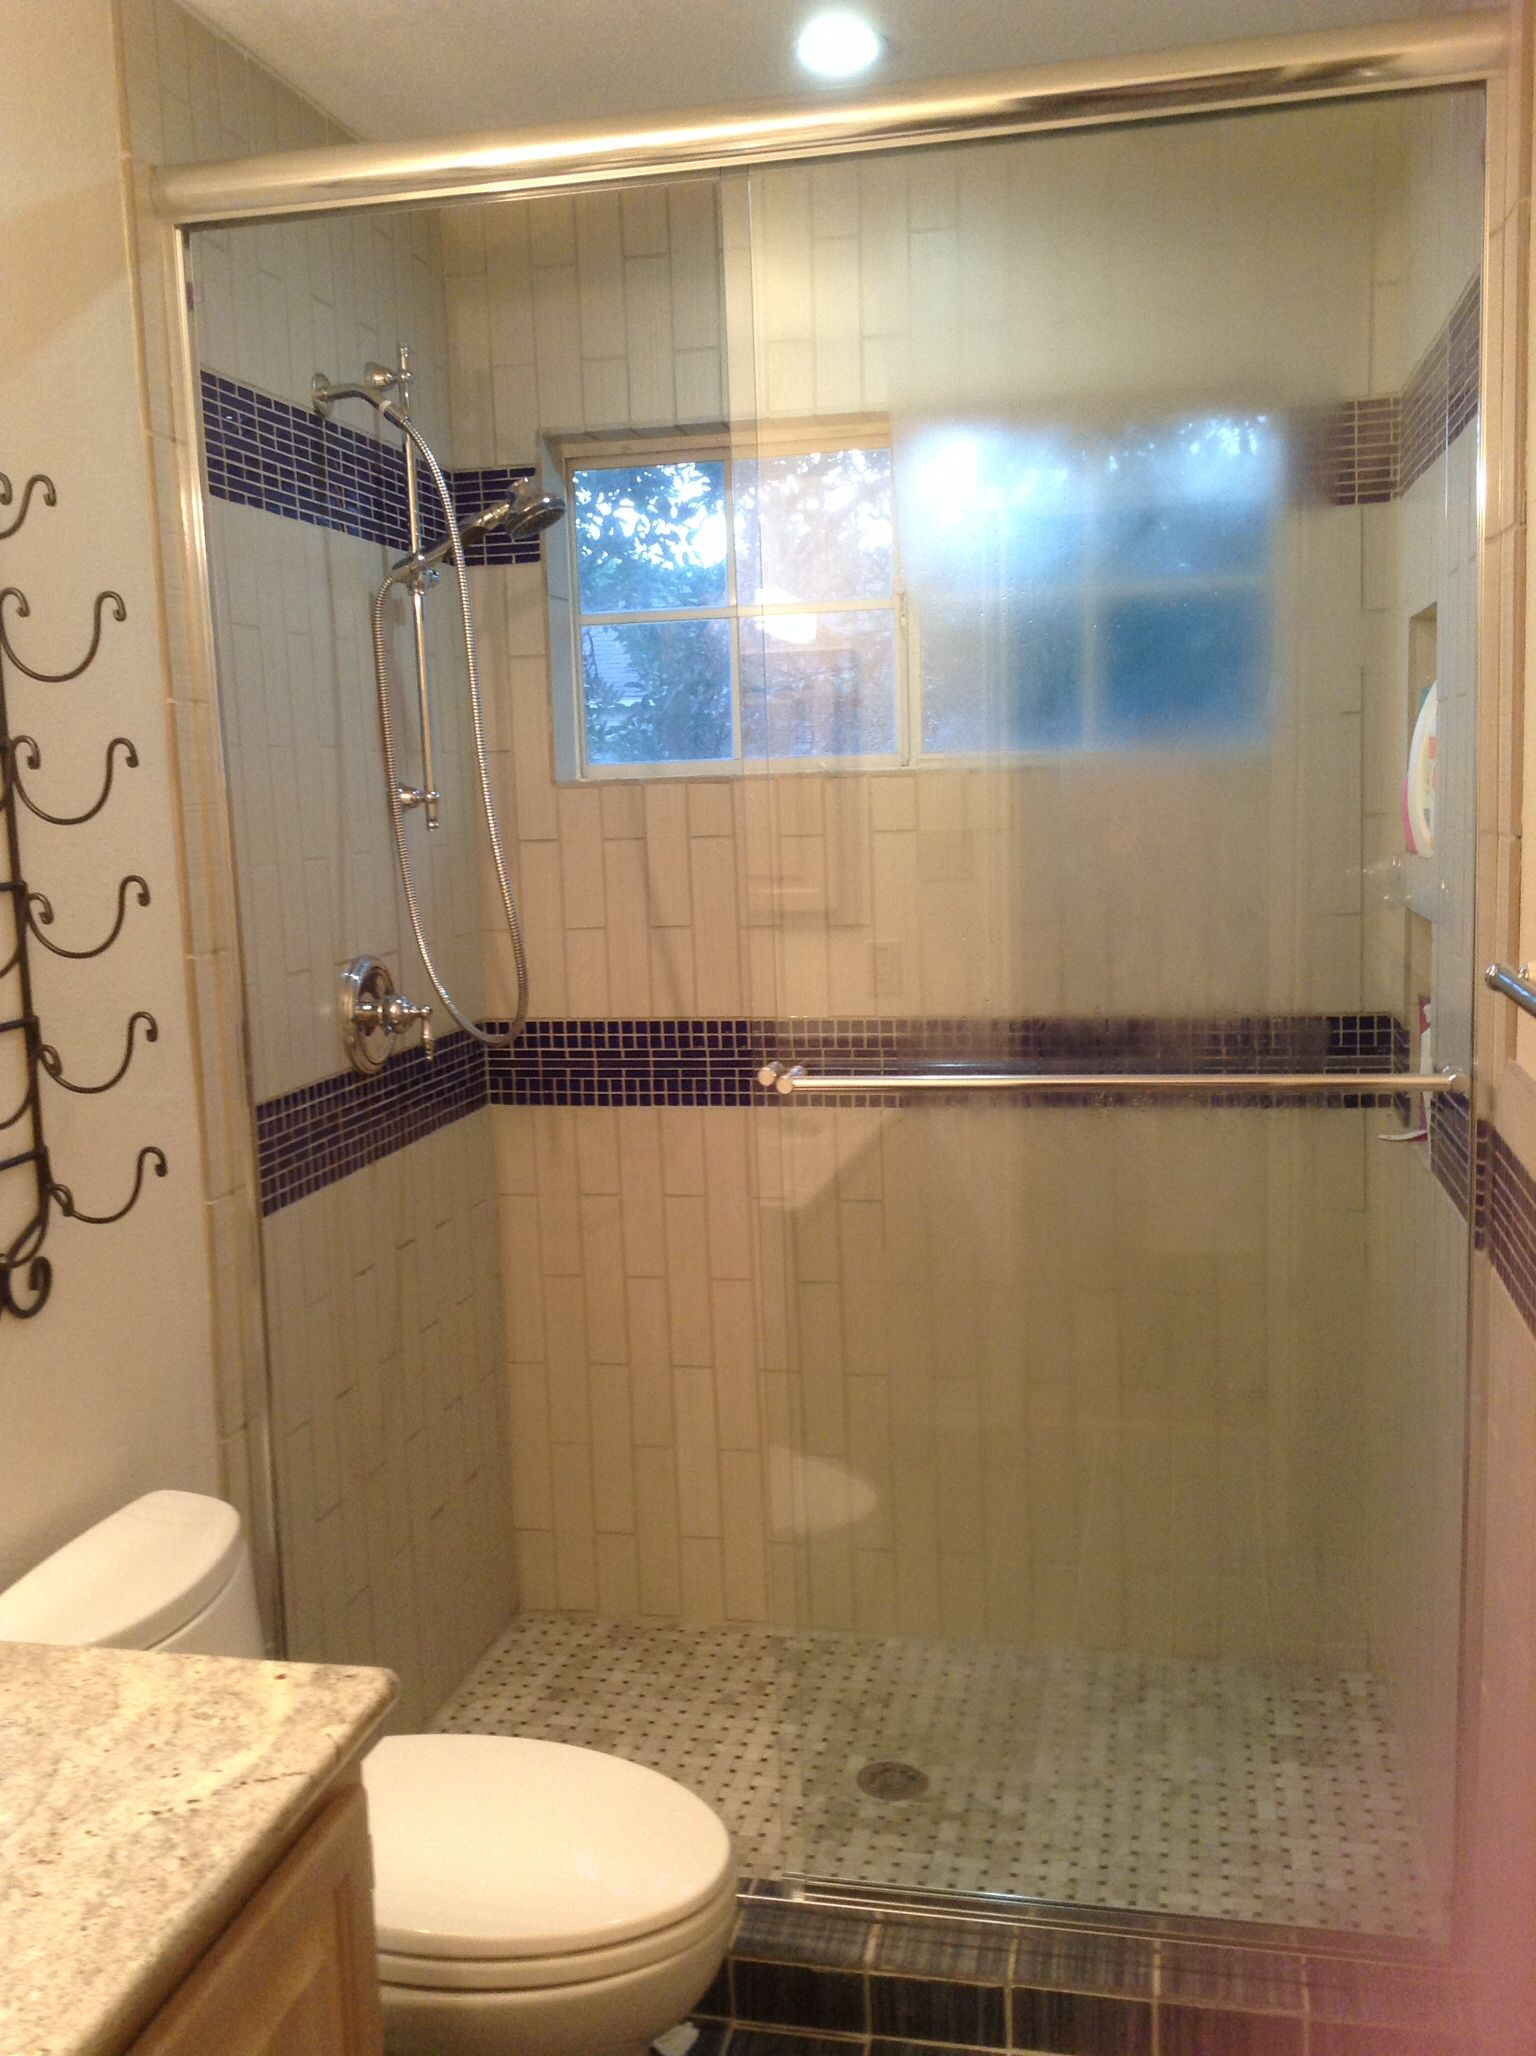 Converted our old bathtub into a stand up shower with subway tiles ...